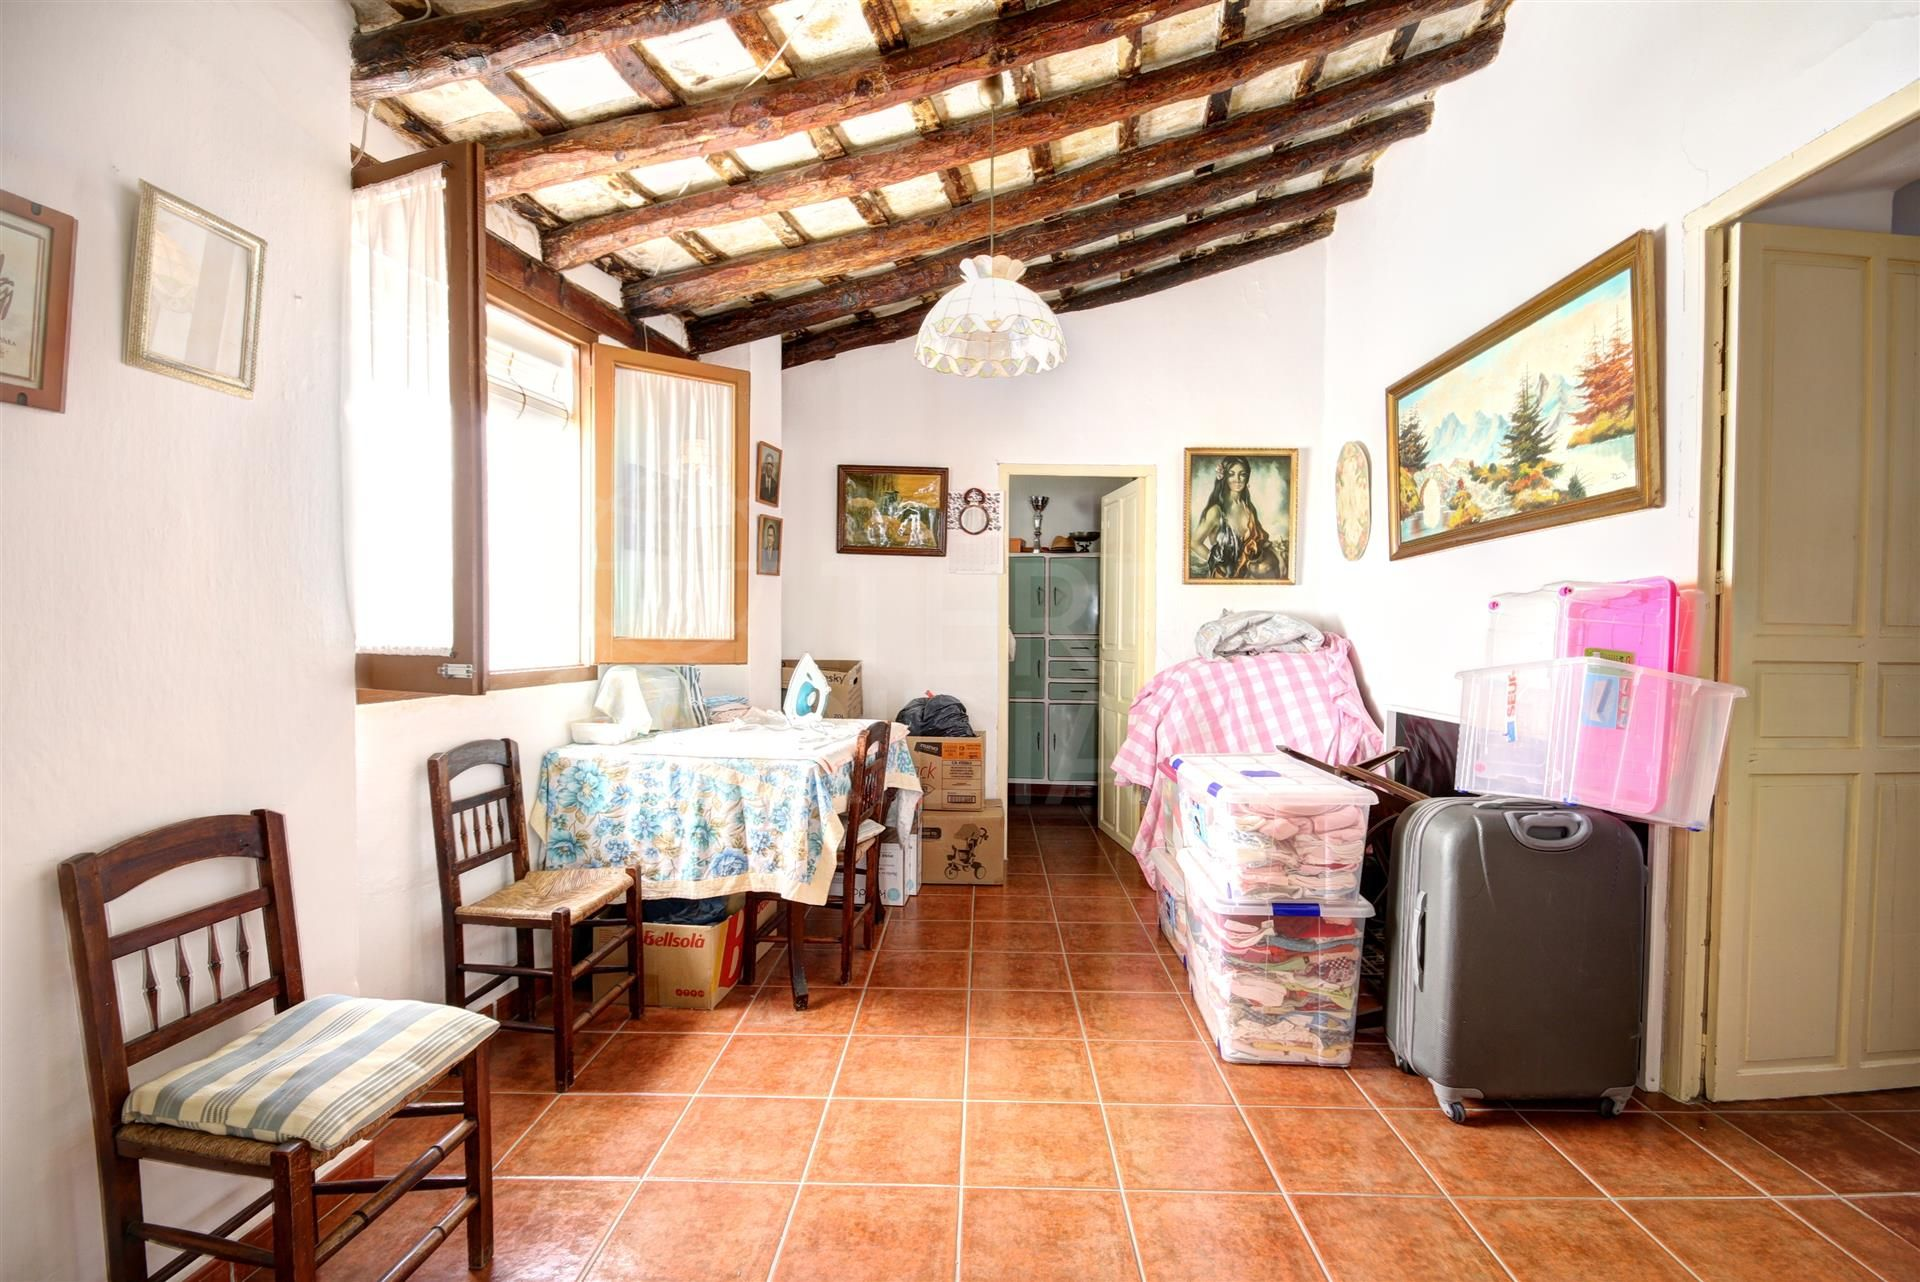 Large corner townhouse for sale in the old town of Estepona